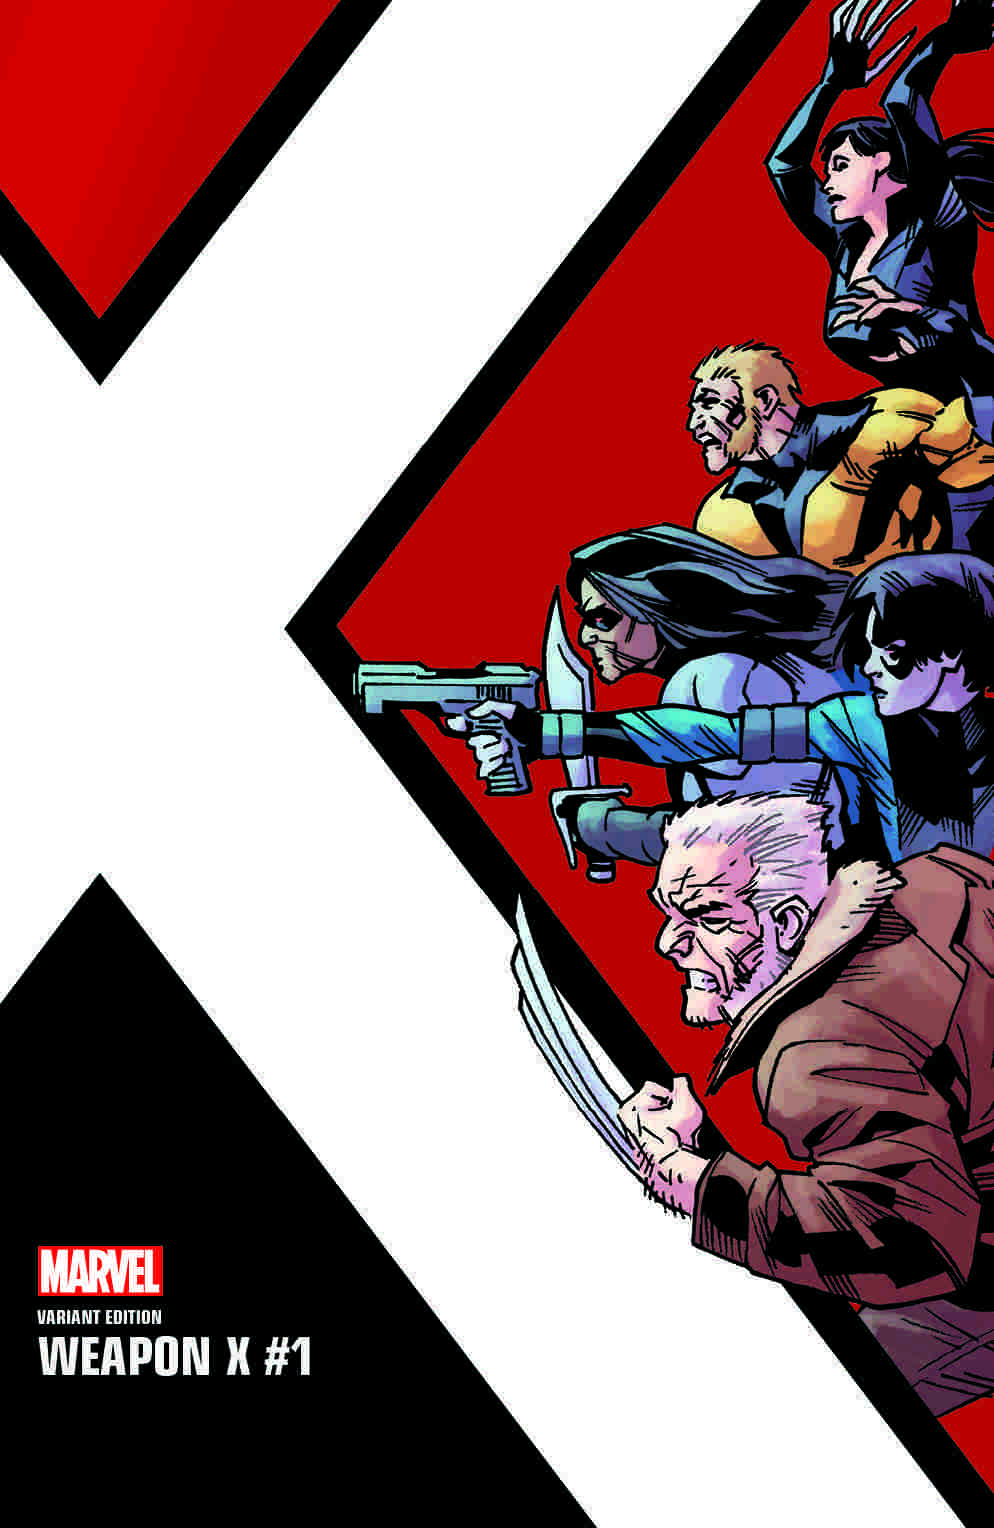 Weapon X #1 Puts Mutants In The Crosshairs